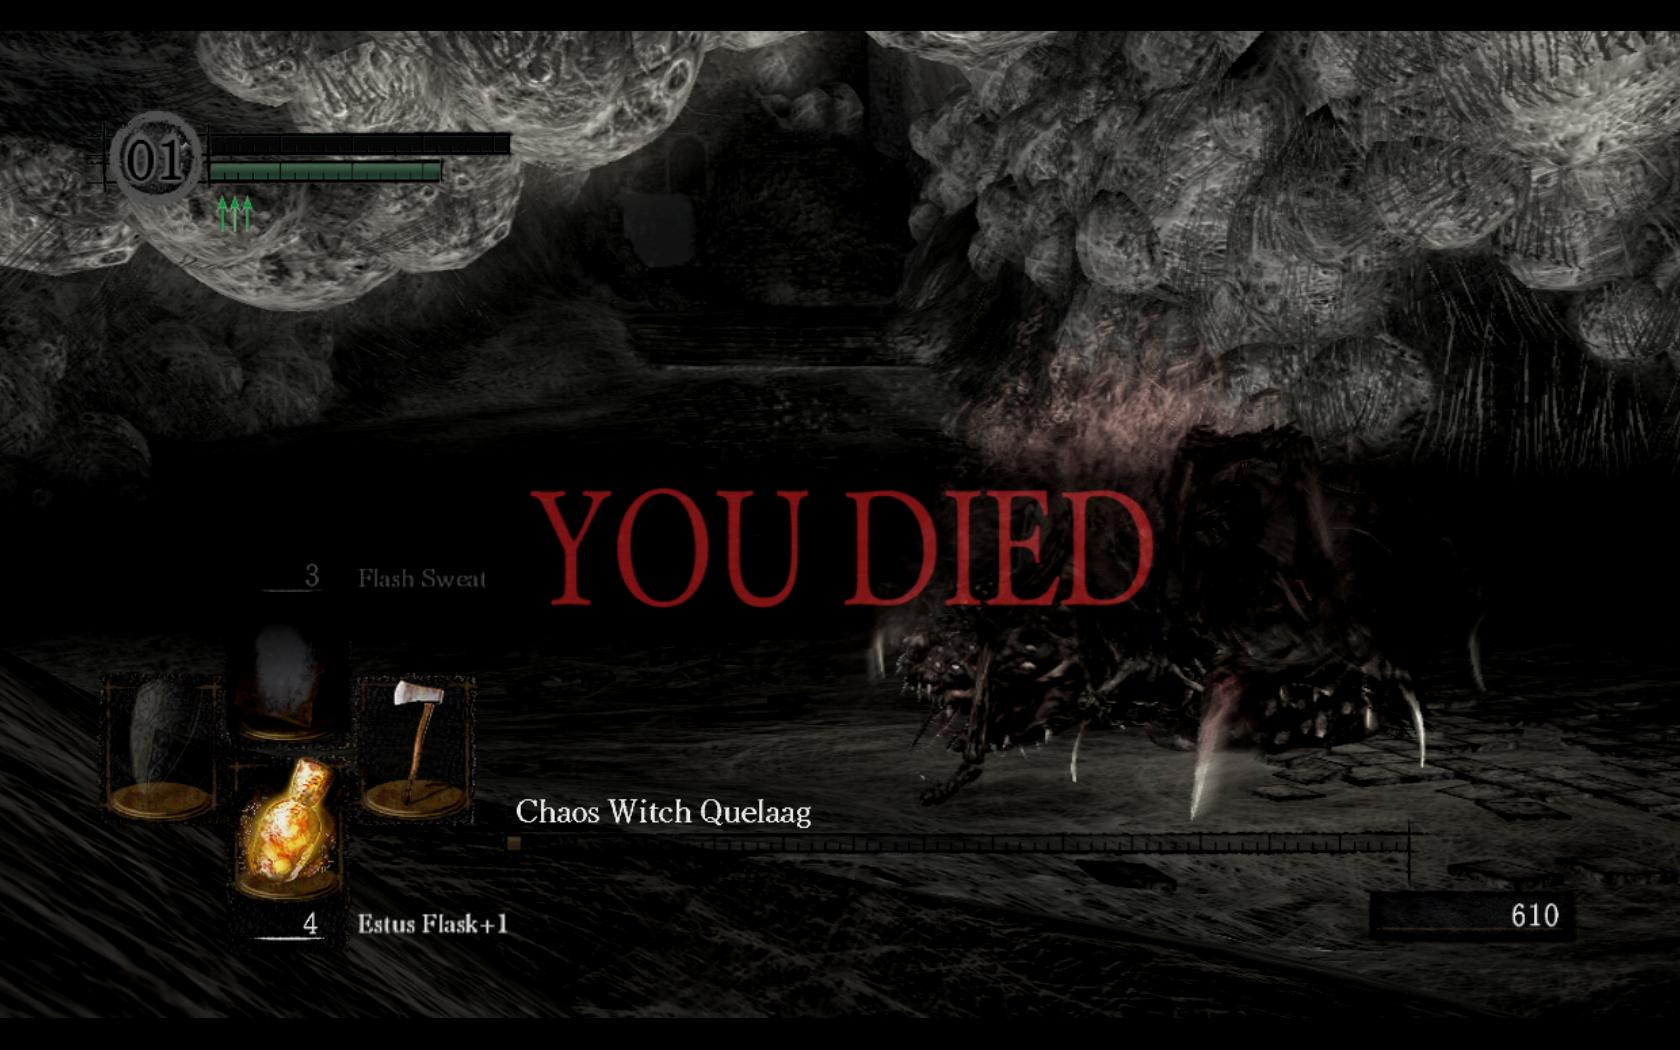 darksoulsyoudied